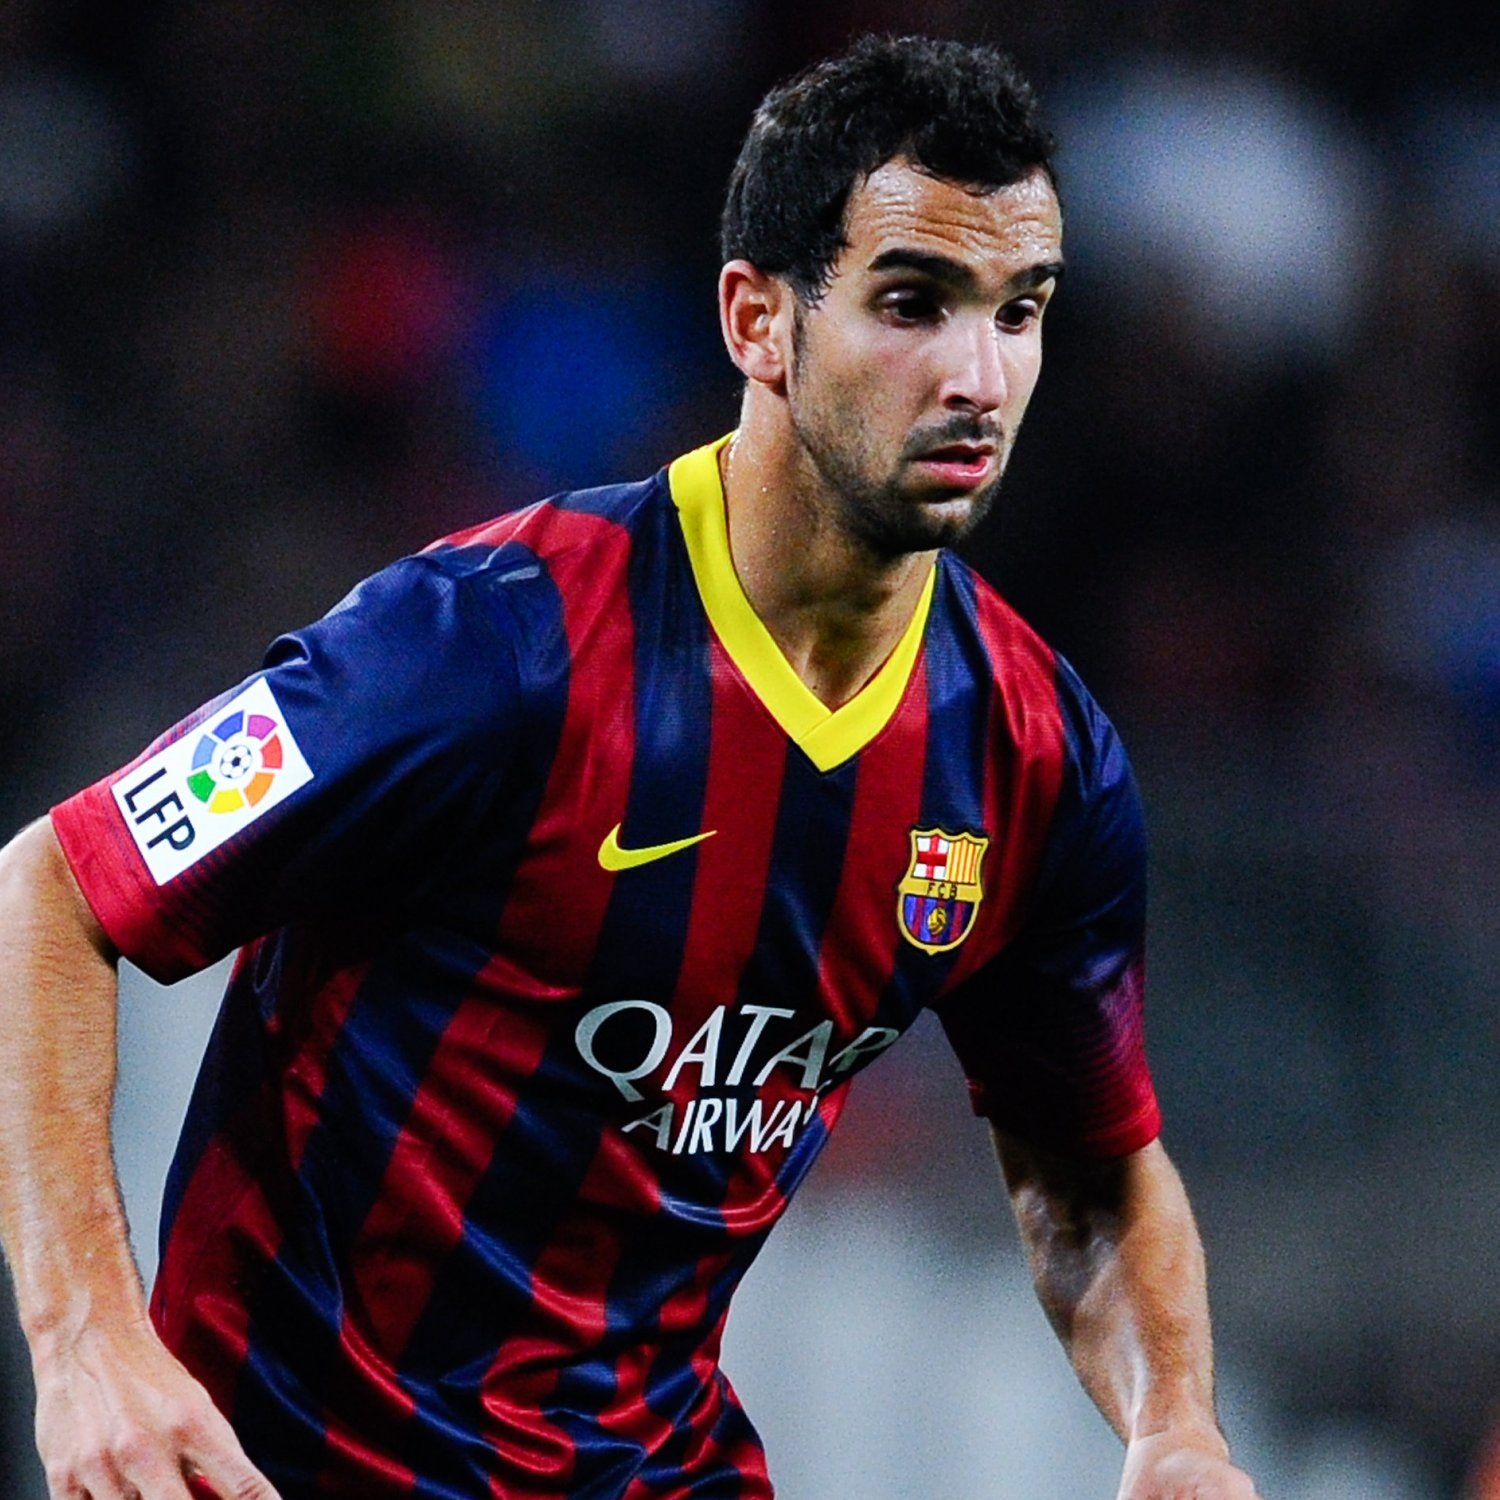 Liverpool Fc Transfer Gossip Reds Close In On Barcelona: Liverpool Transfer News: Barcelona's Martin Montoya Should